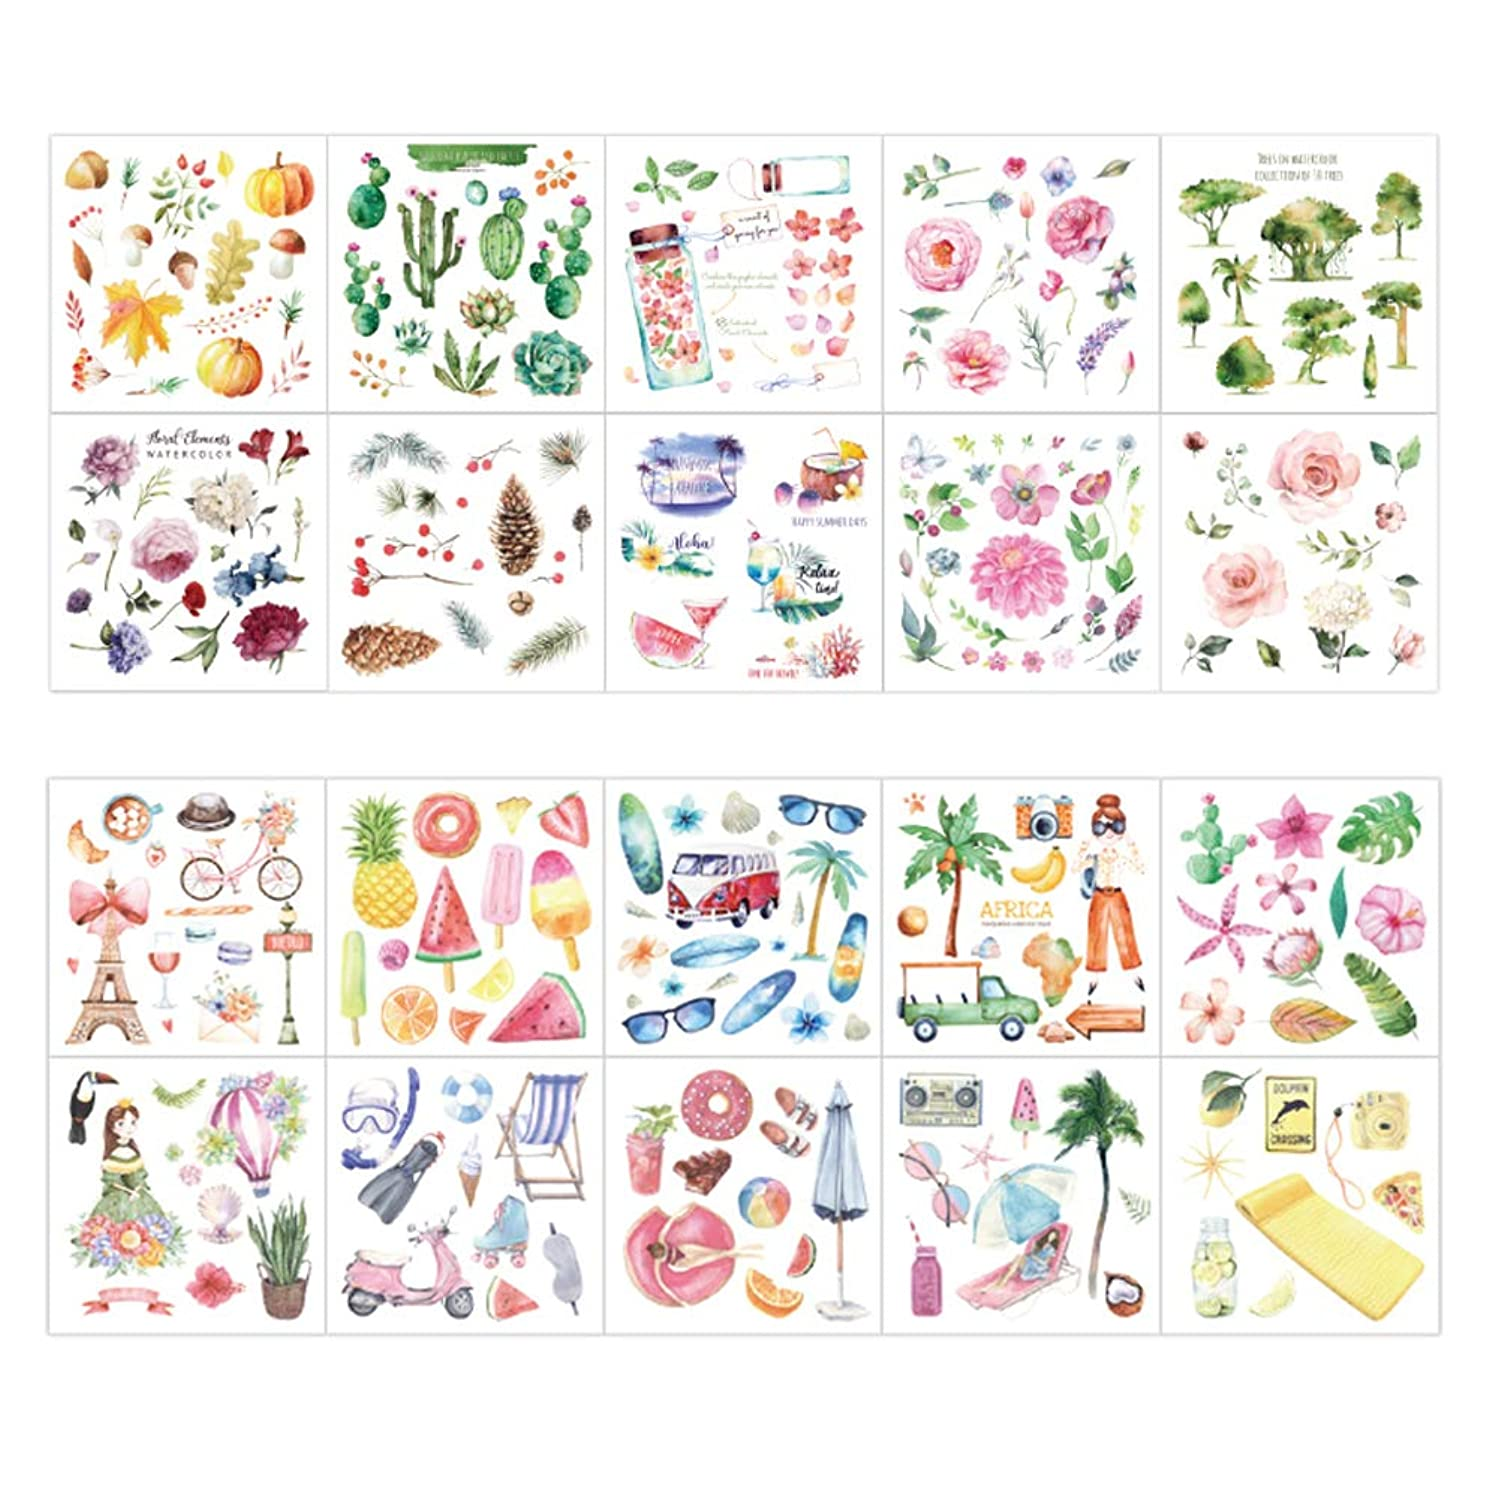 Cute Washi Paper Stationery Sticker Set Pumpkin Pine Nuts Branch Succulent Plants Cactus Bicycle Tower Fruit Popsicle Coconut Tree Glasses Swimming Equipment Vacation Stickers Scrapbooking Label(B)